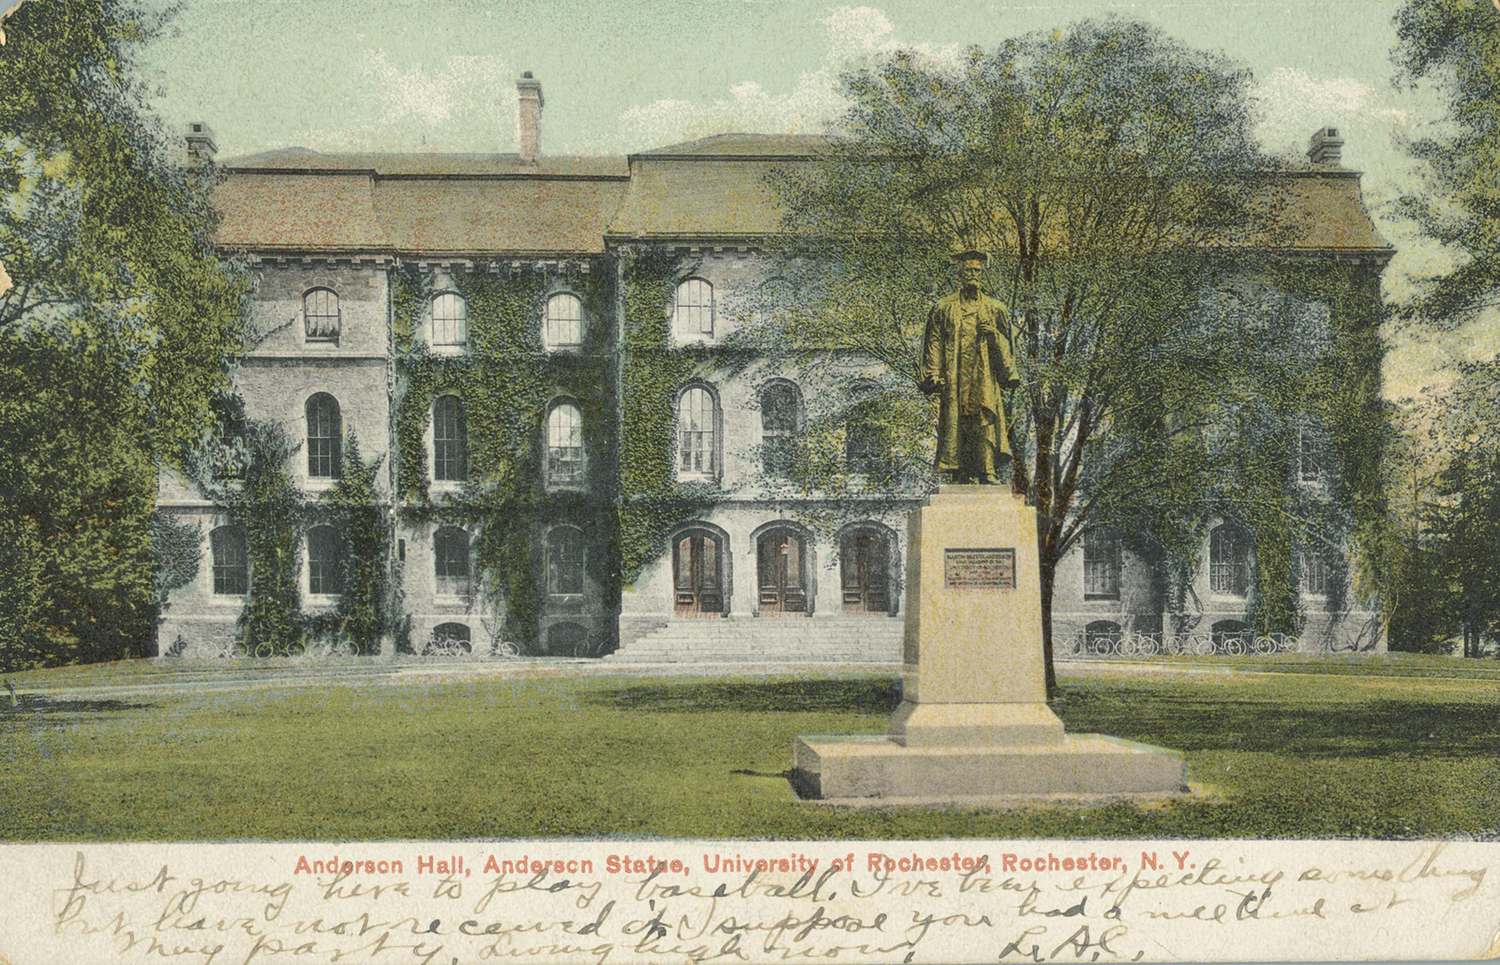 Anderson Hall, Anderson Statue, University of Rochester, Rochester, N.Y.